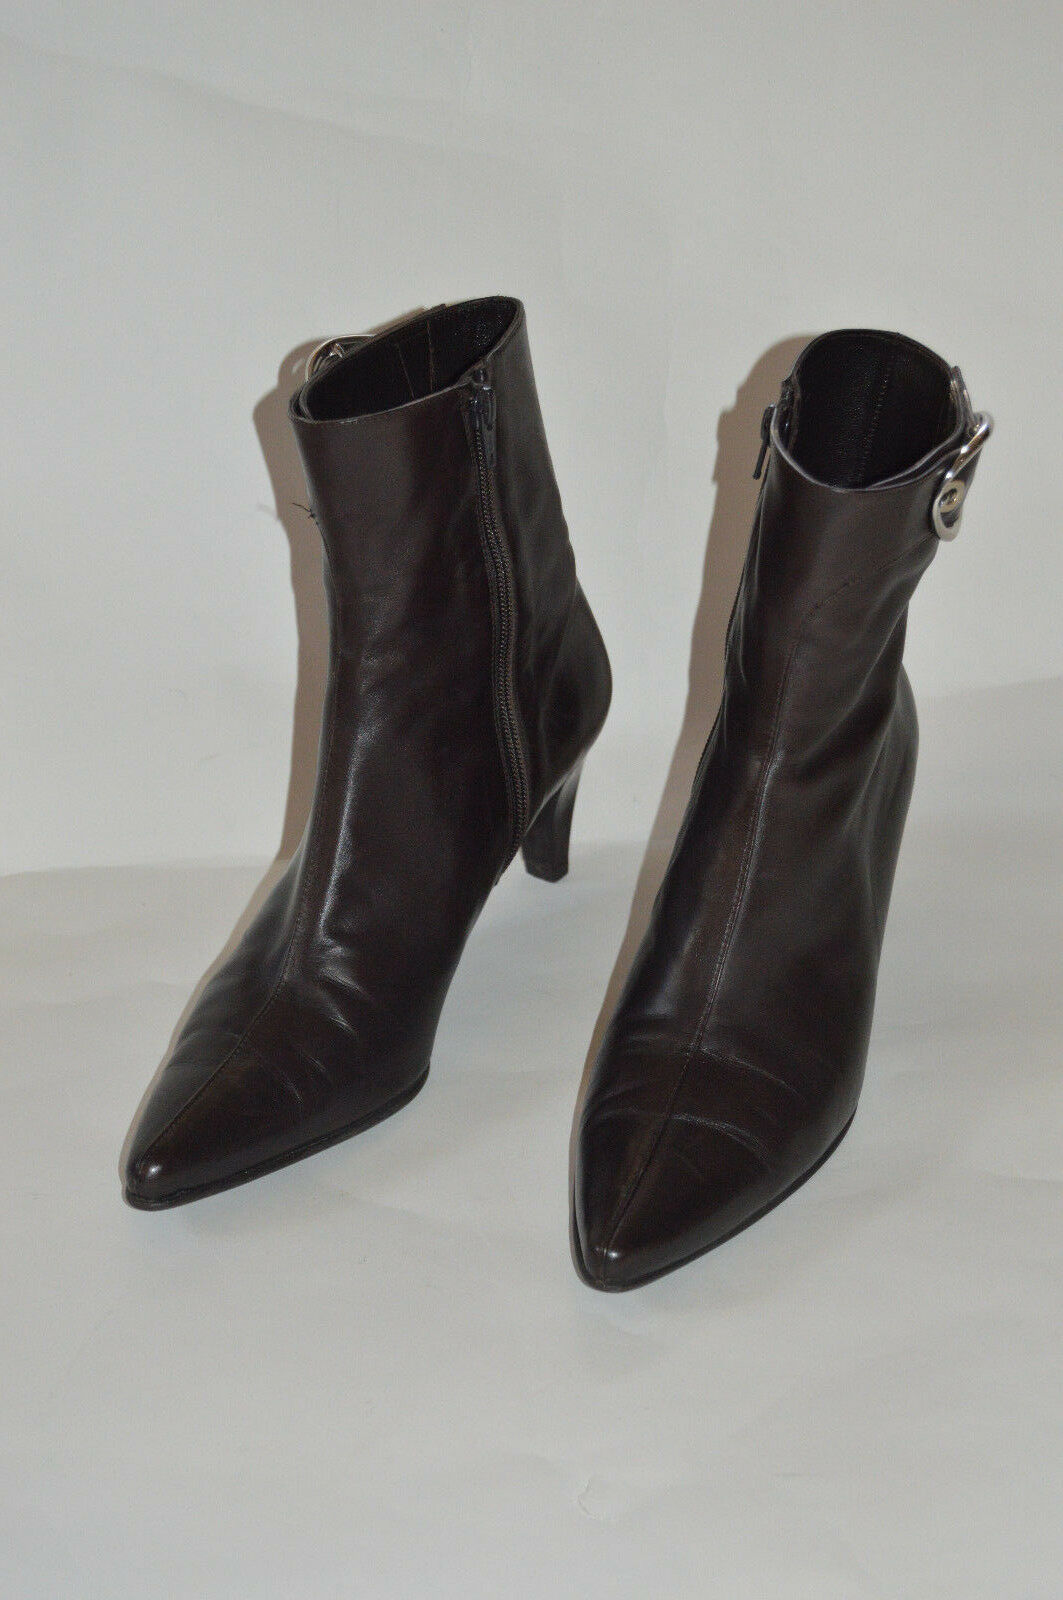 STUART WEITZMAN brown leather short ankle boot high heel size 9 M